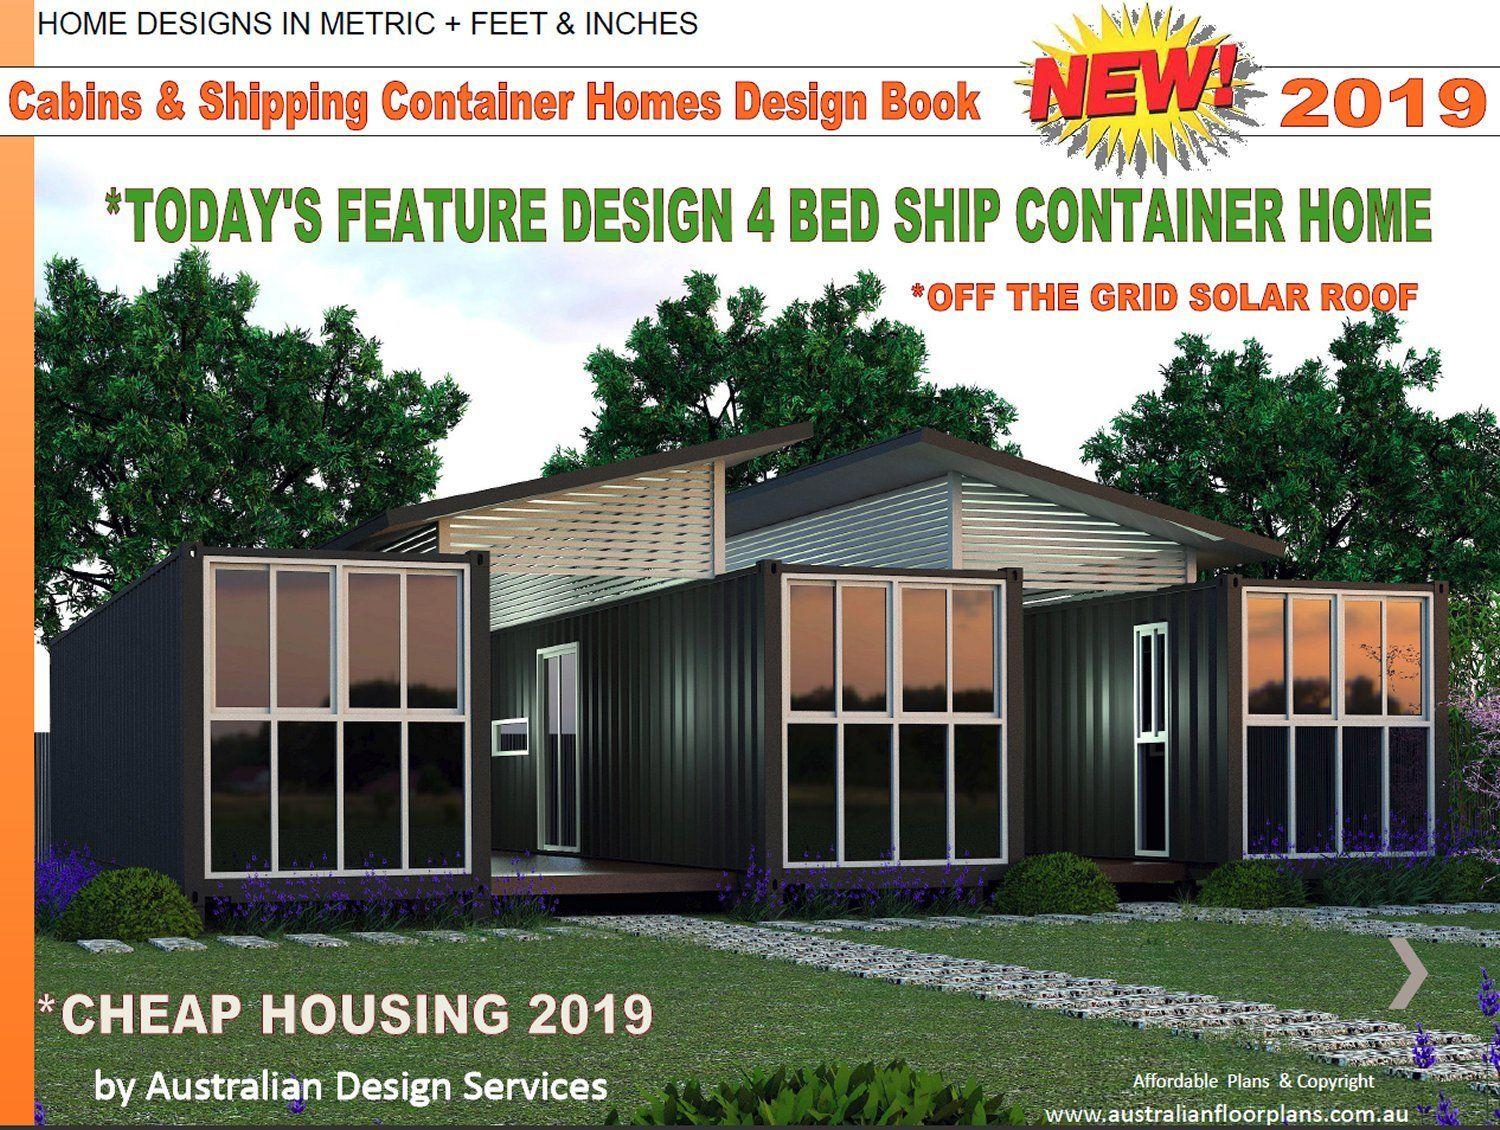 Small Houses Cabins Shipping Container Home Design Book Australian And Shipping Container Home Designs Container House Plans Shipping Container House Plans